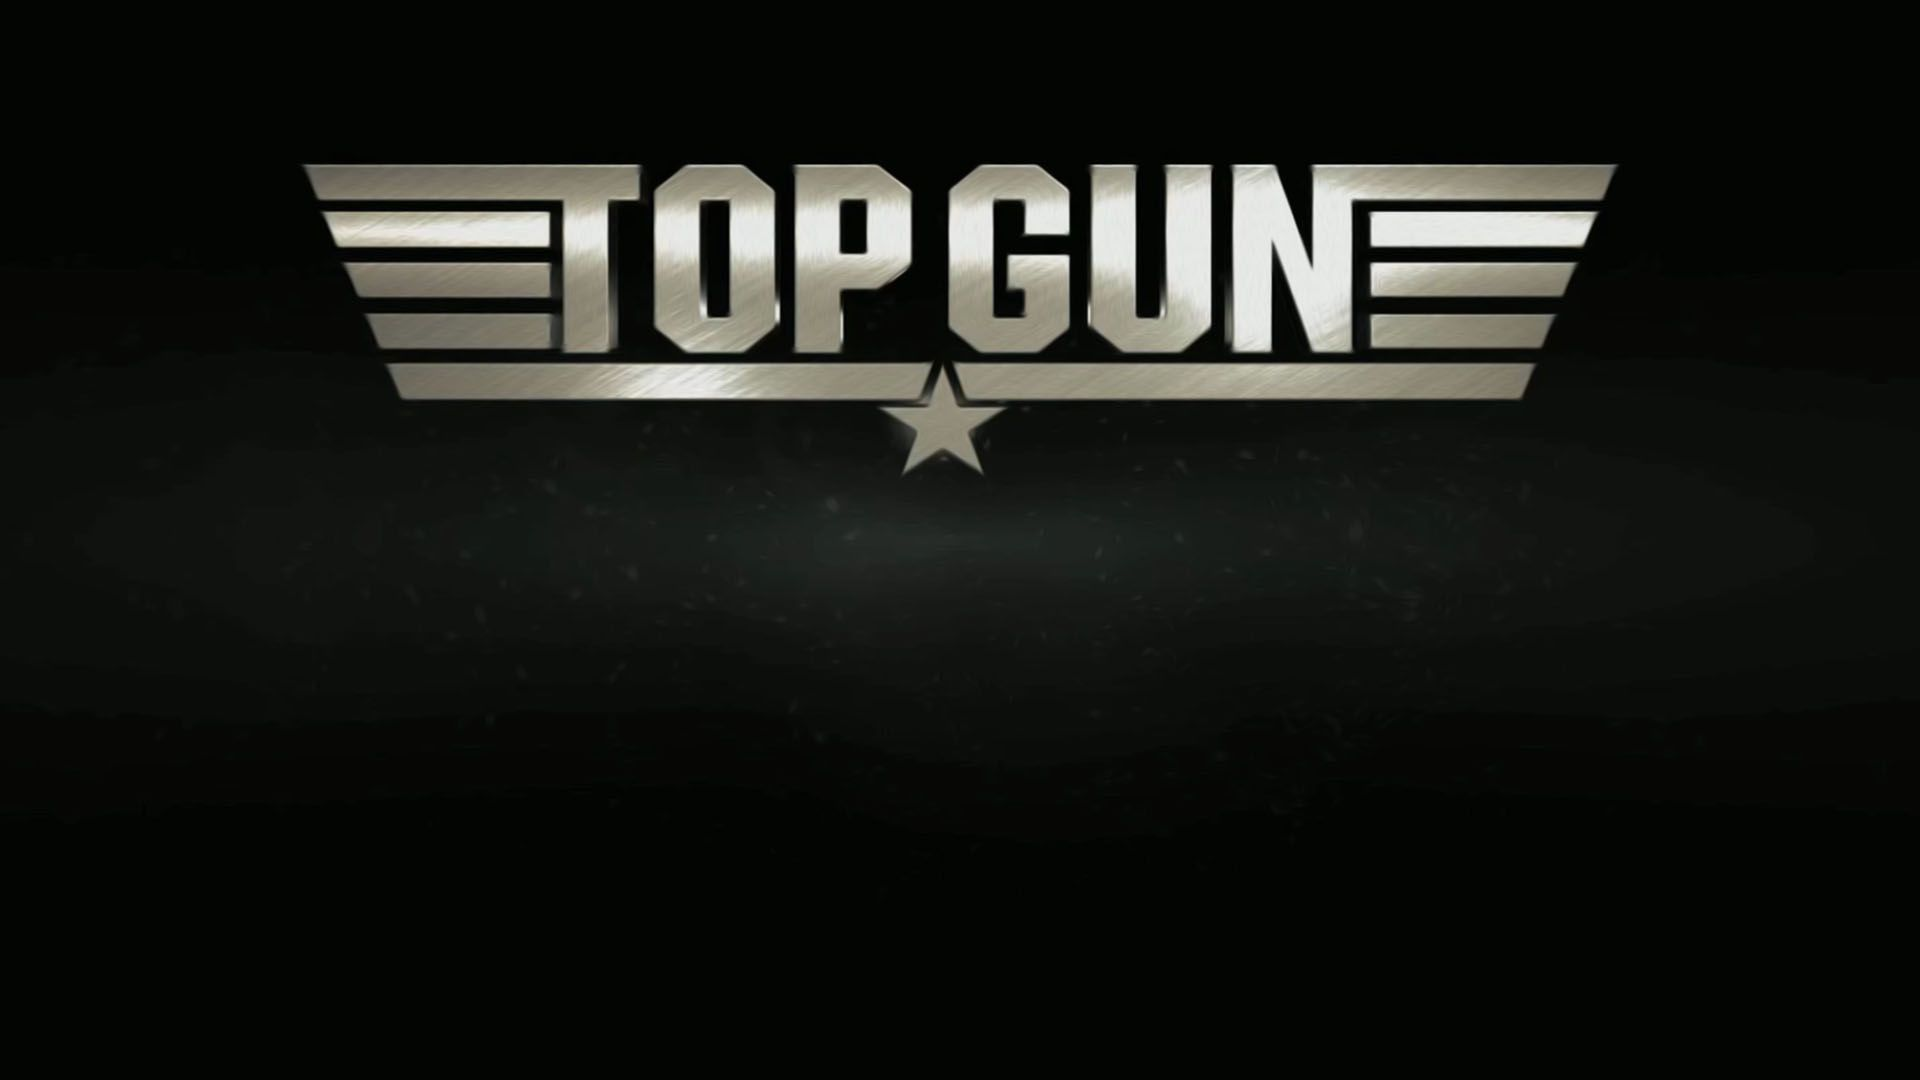 Top Gun Wallpapers - Top Free Top Gun Backgrounds